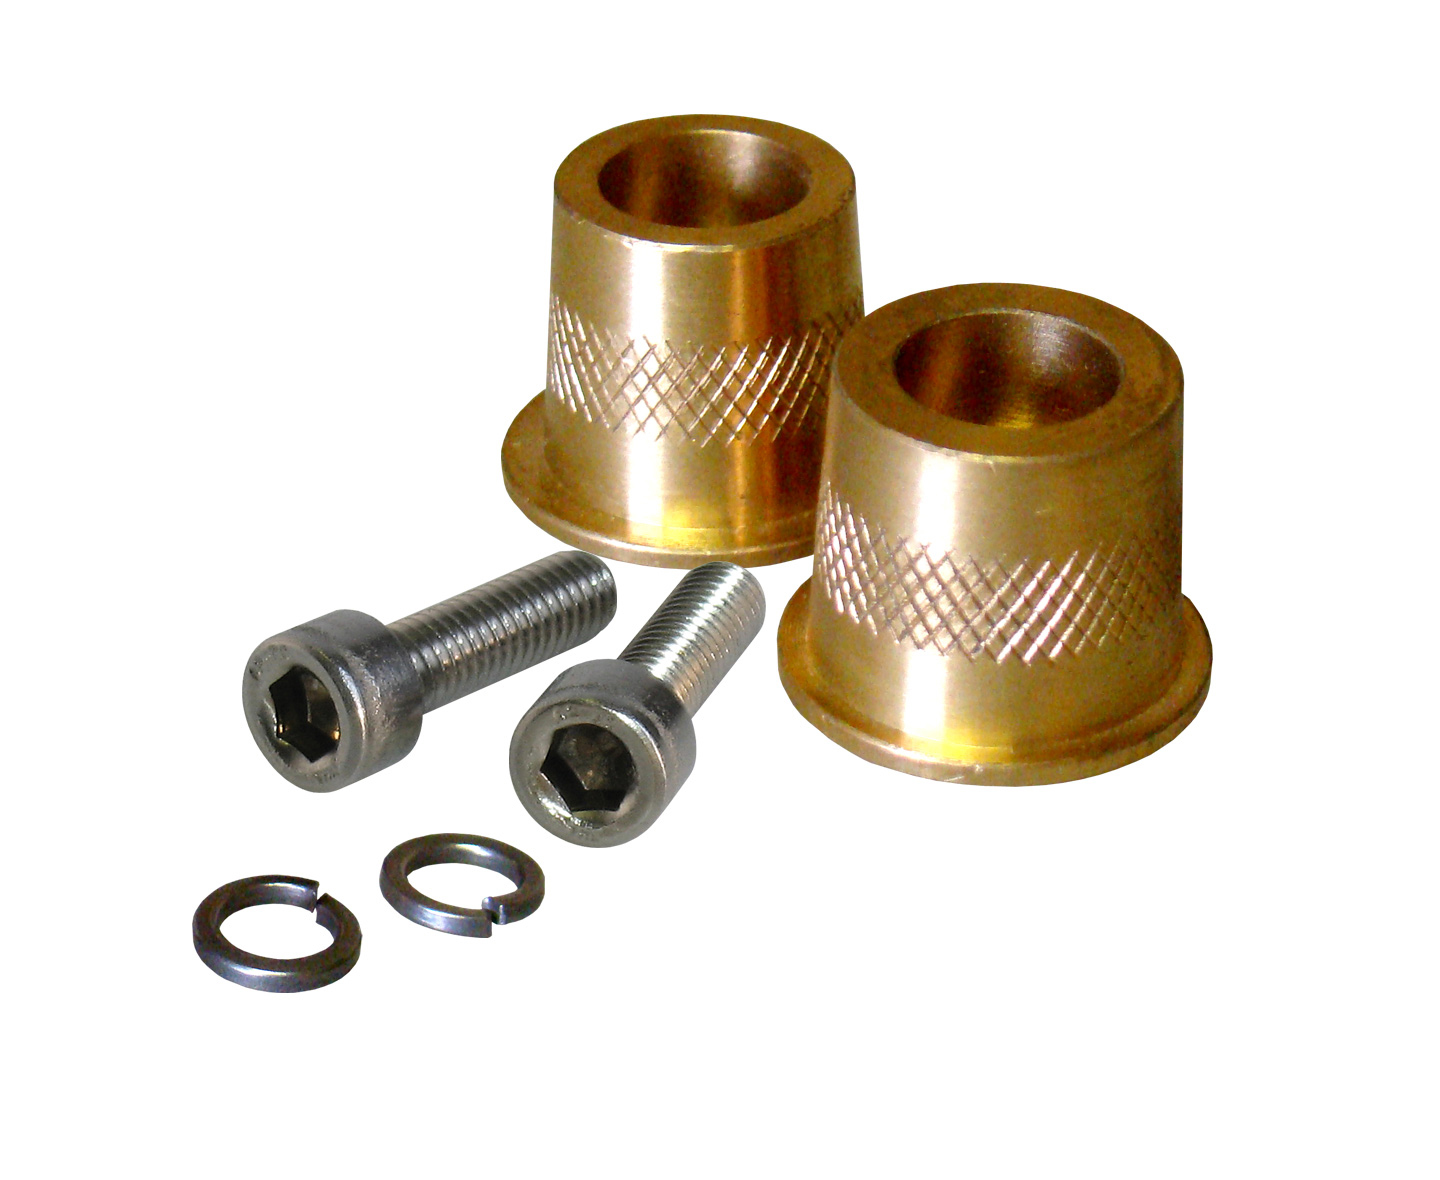 XS Power 580 Brass Battery Terminal Post Adapters For Cars